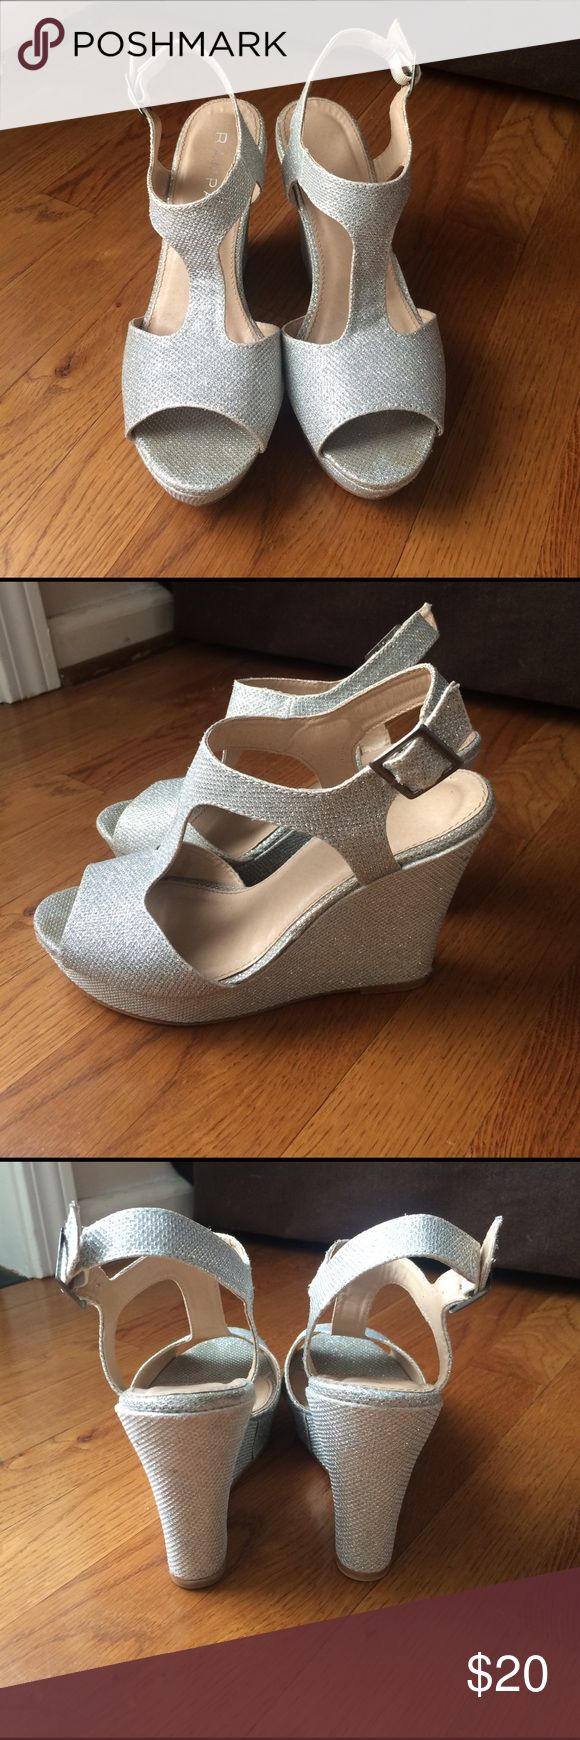 Rampage Candelas Sparkly Silver Wedges Sz 7 Rampage Silver Wedges- perfect for formals, prom, pageants. I have 2 daughters, so I have 2 pairs, both Sz 7. Great condition- both were worn once for school pageant. Rampage Shoes Heels